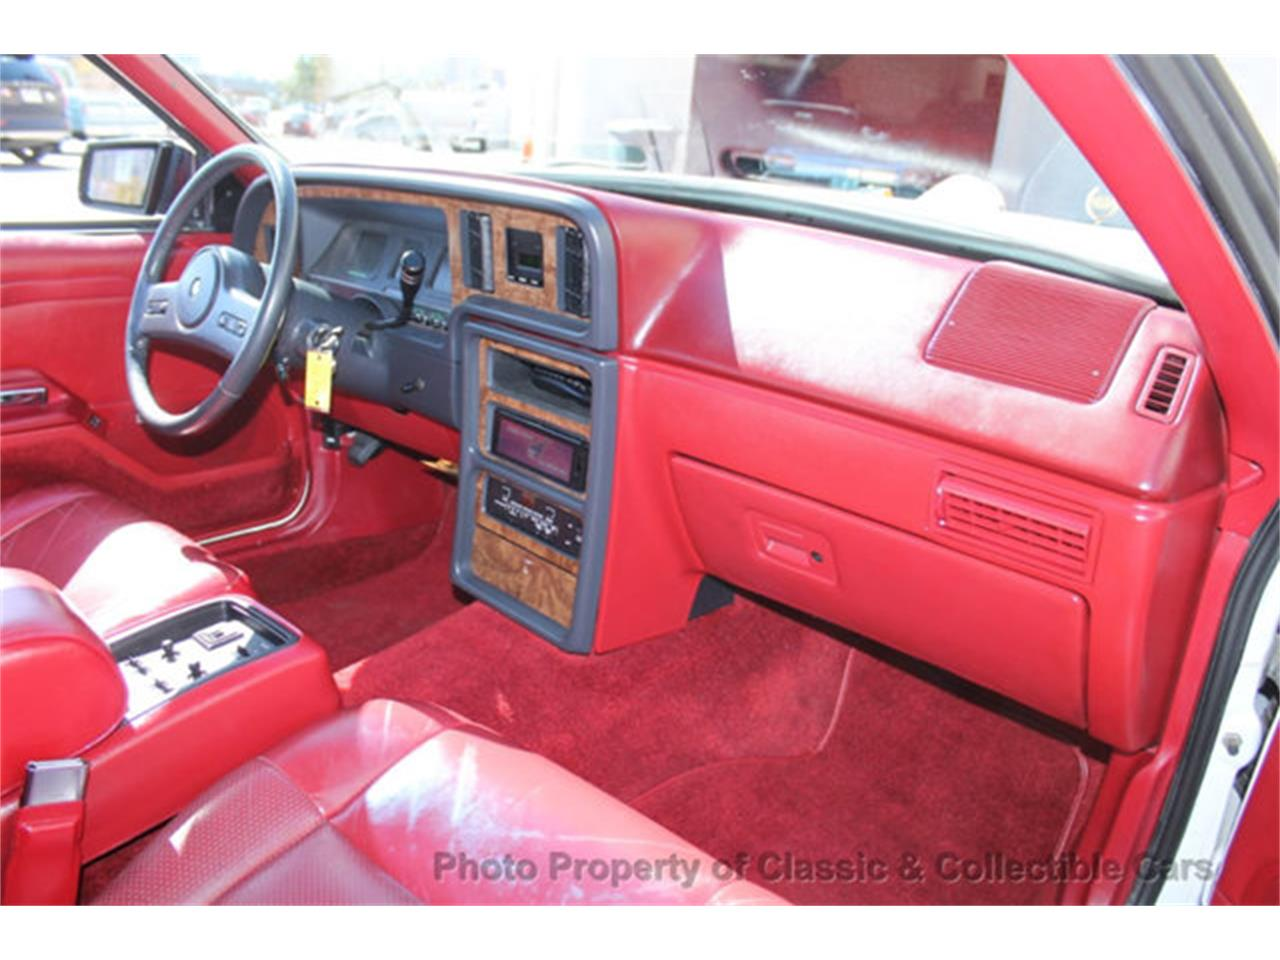 1988 Tiffany Classic for sale in Las Vegas, NV – photo 13